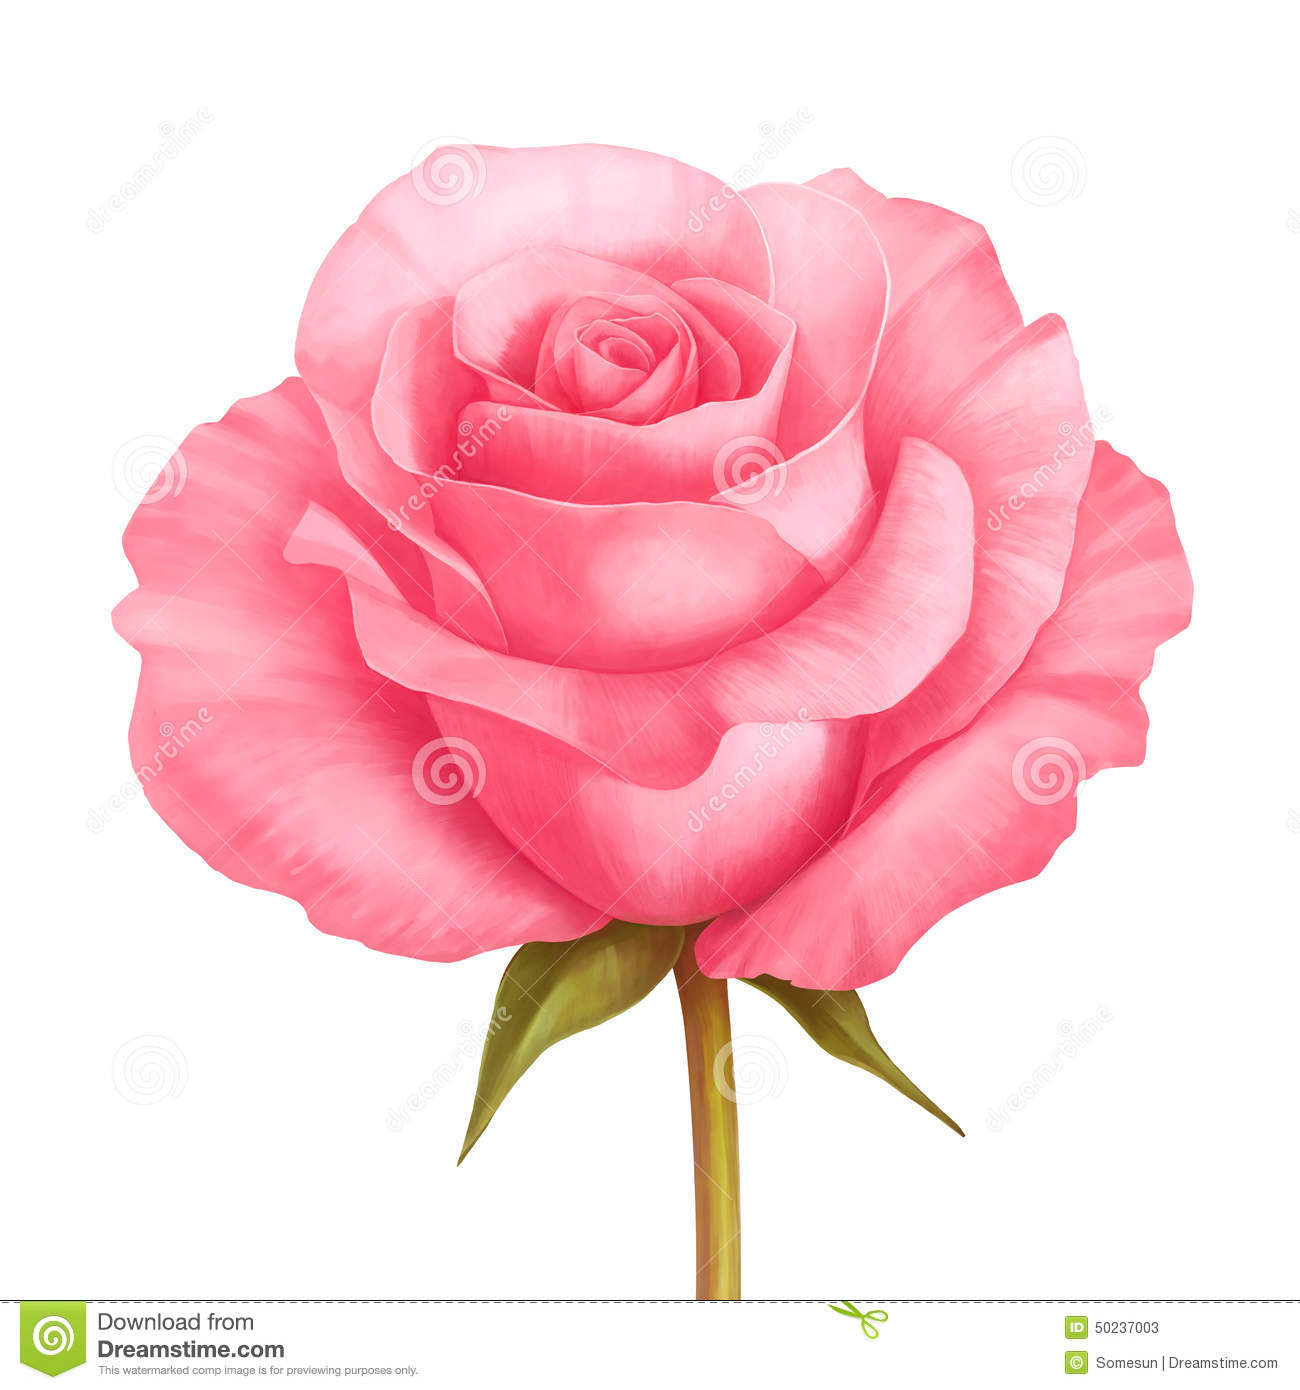 Vector Rose Pink Flower Illustration Isolated On White Stock Vector